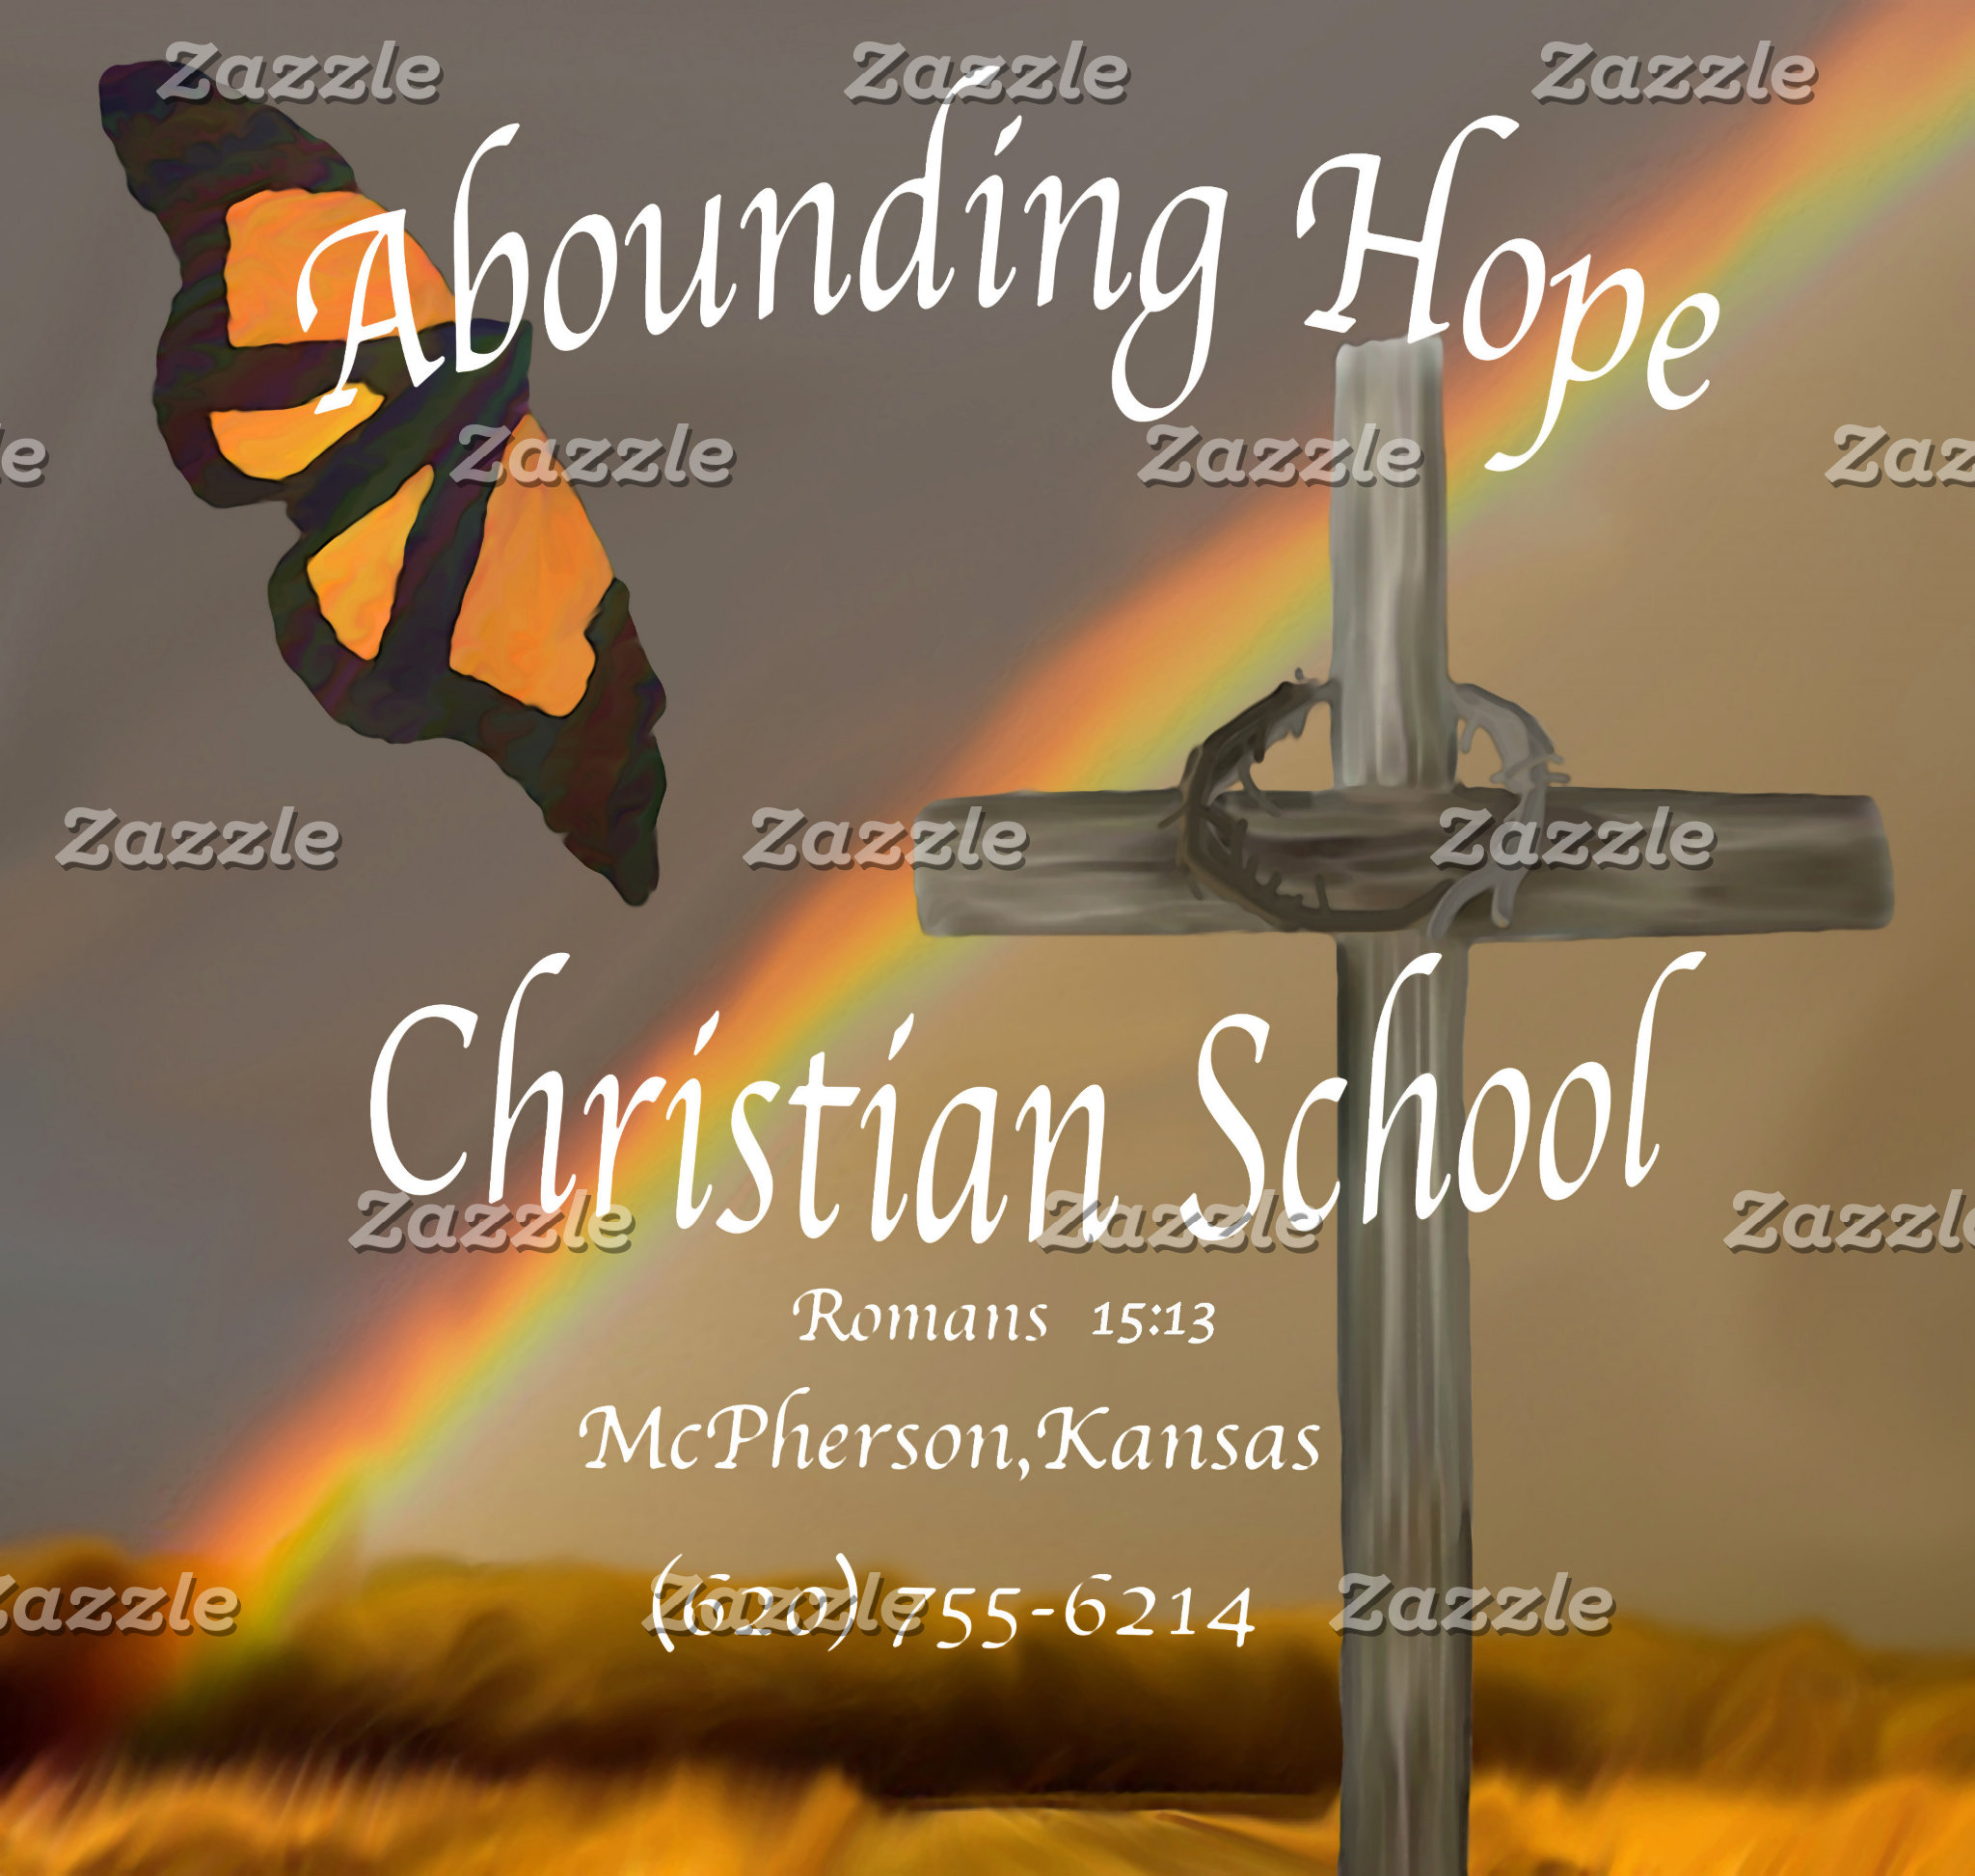 Abounding Hope